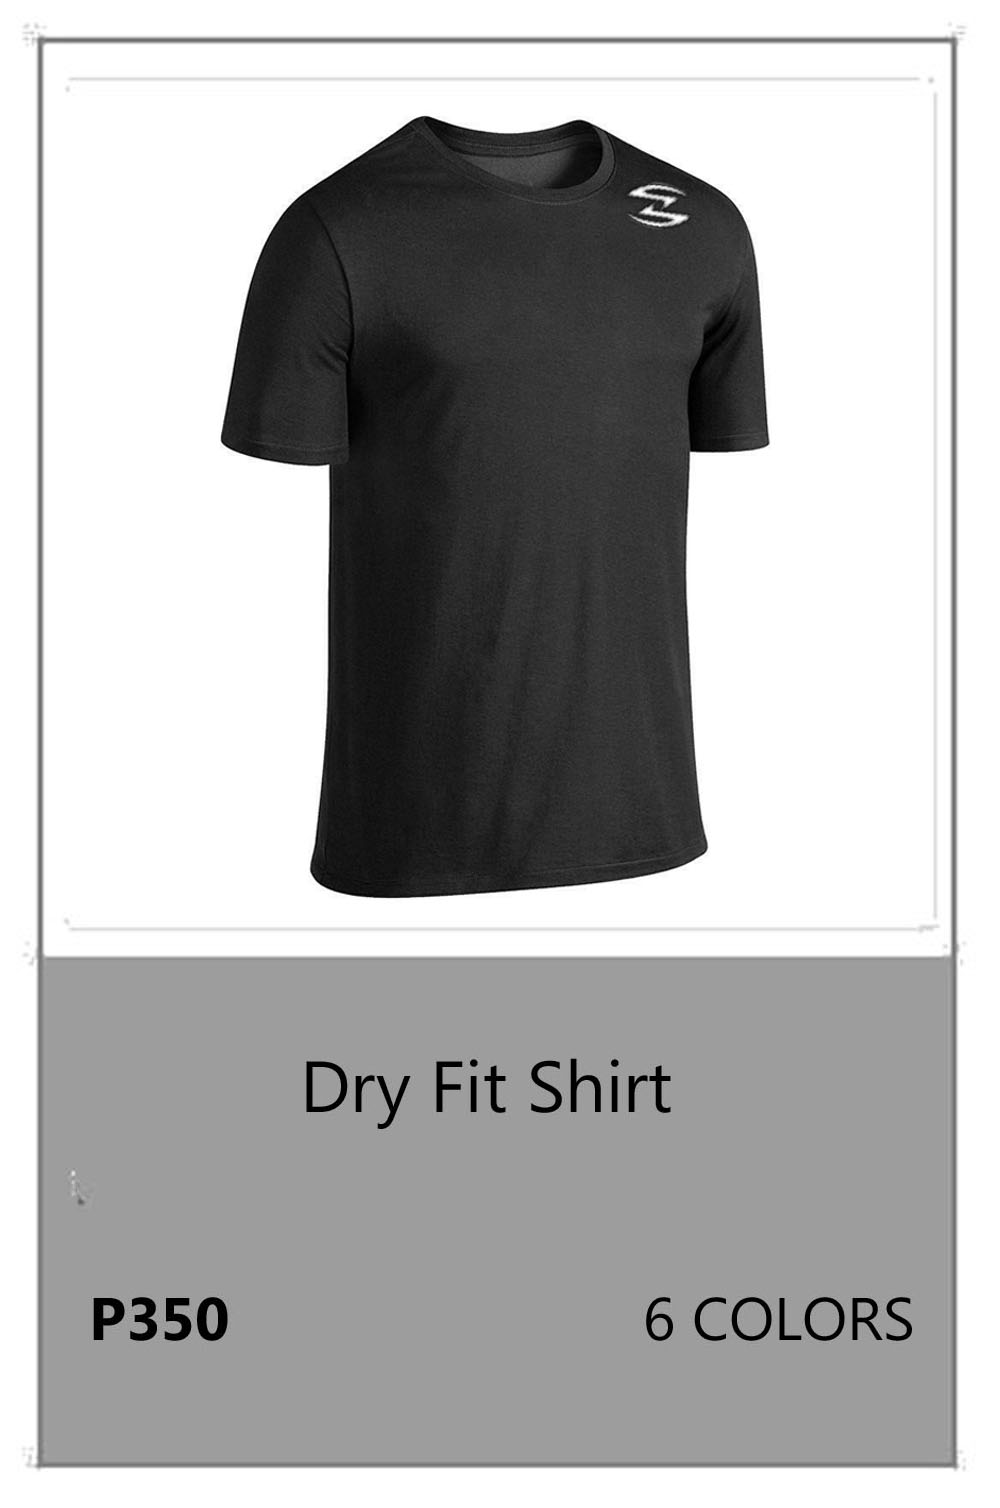 Dry Fit Blk